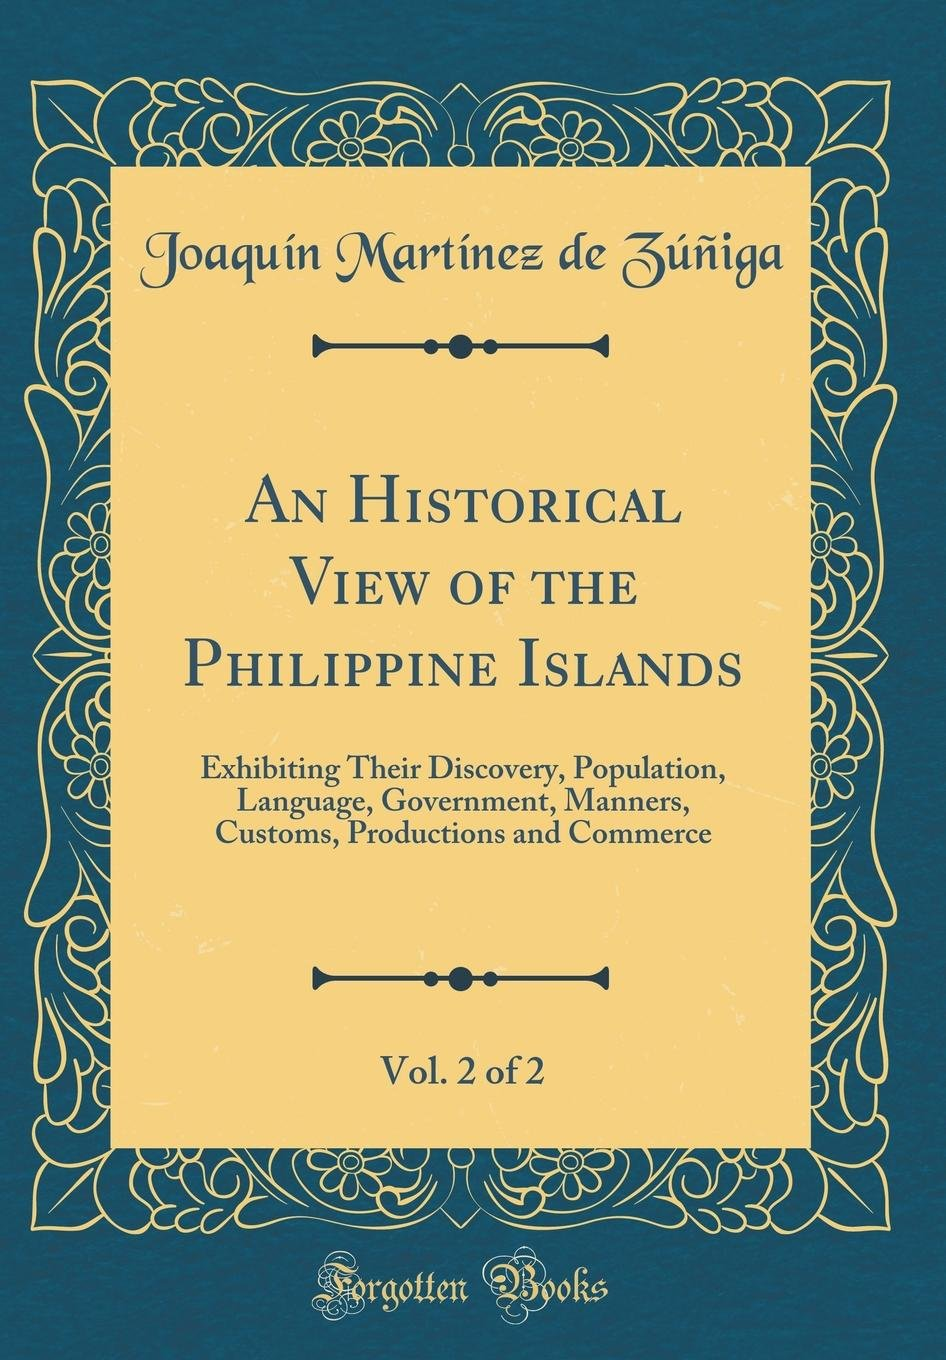 Read Online An Historical View of the Philippine Islands, Vol. 2 of 2: Exhibiting Their Discovery, Population, Language, Government, Manners, Customs, Productions and Commerce (Classic Reprint) PDF